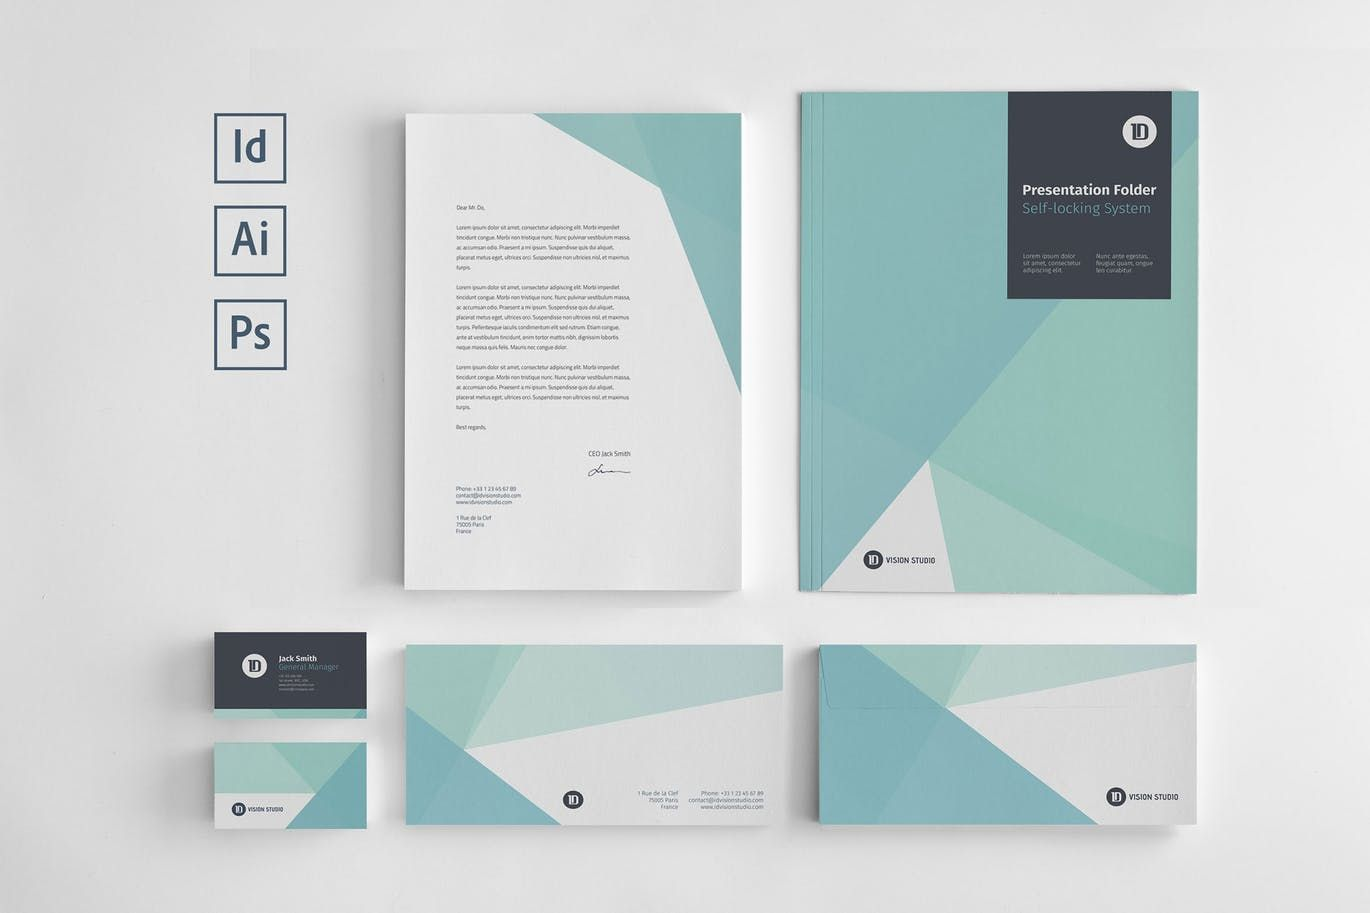 Stationery Corporate Identity 005 by ID_Vision_Studio on